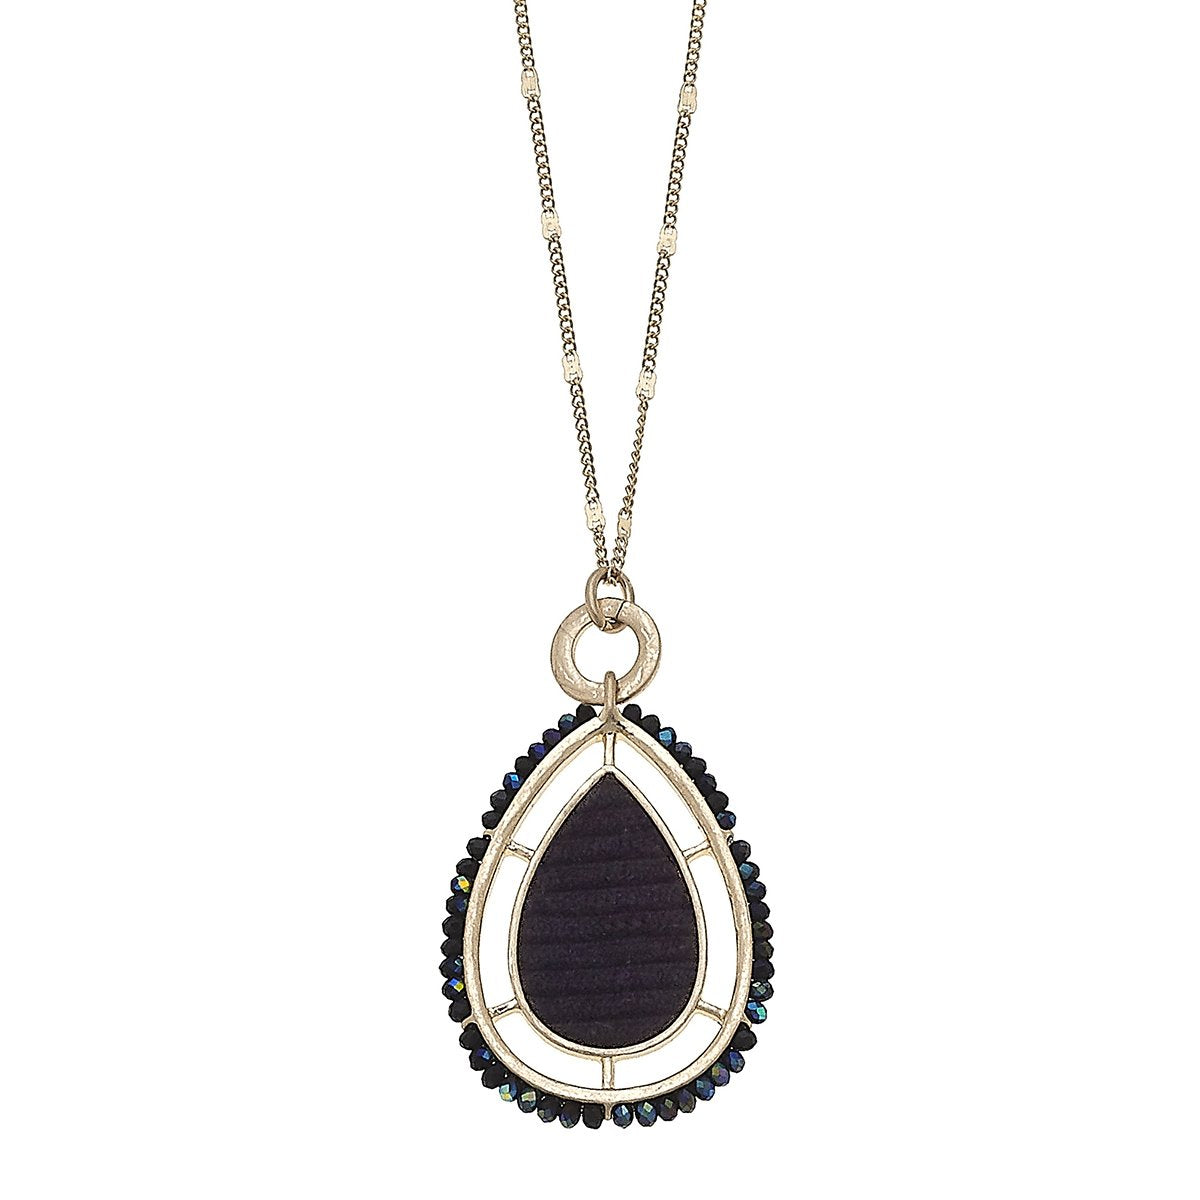 Velvet Beaded Teardrop Pendant Necklace in Black